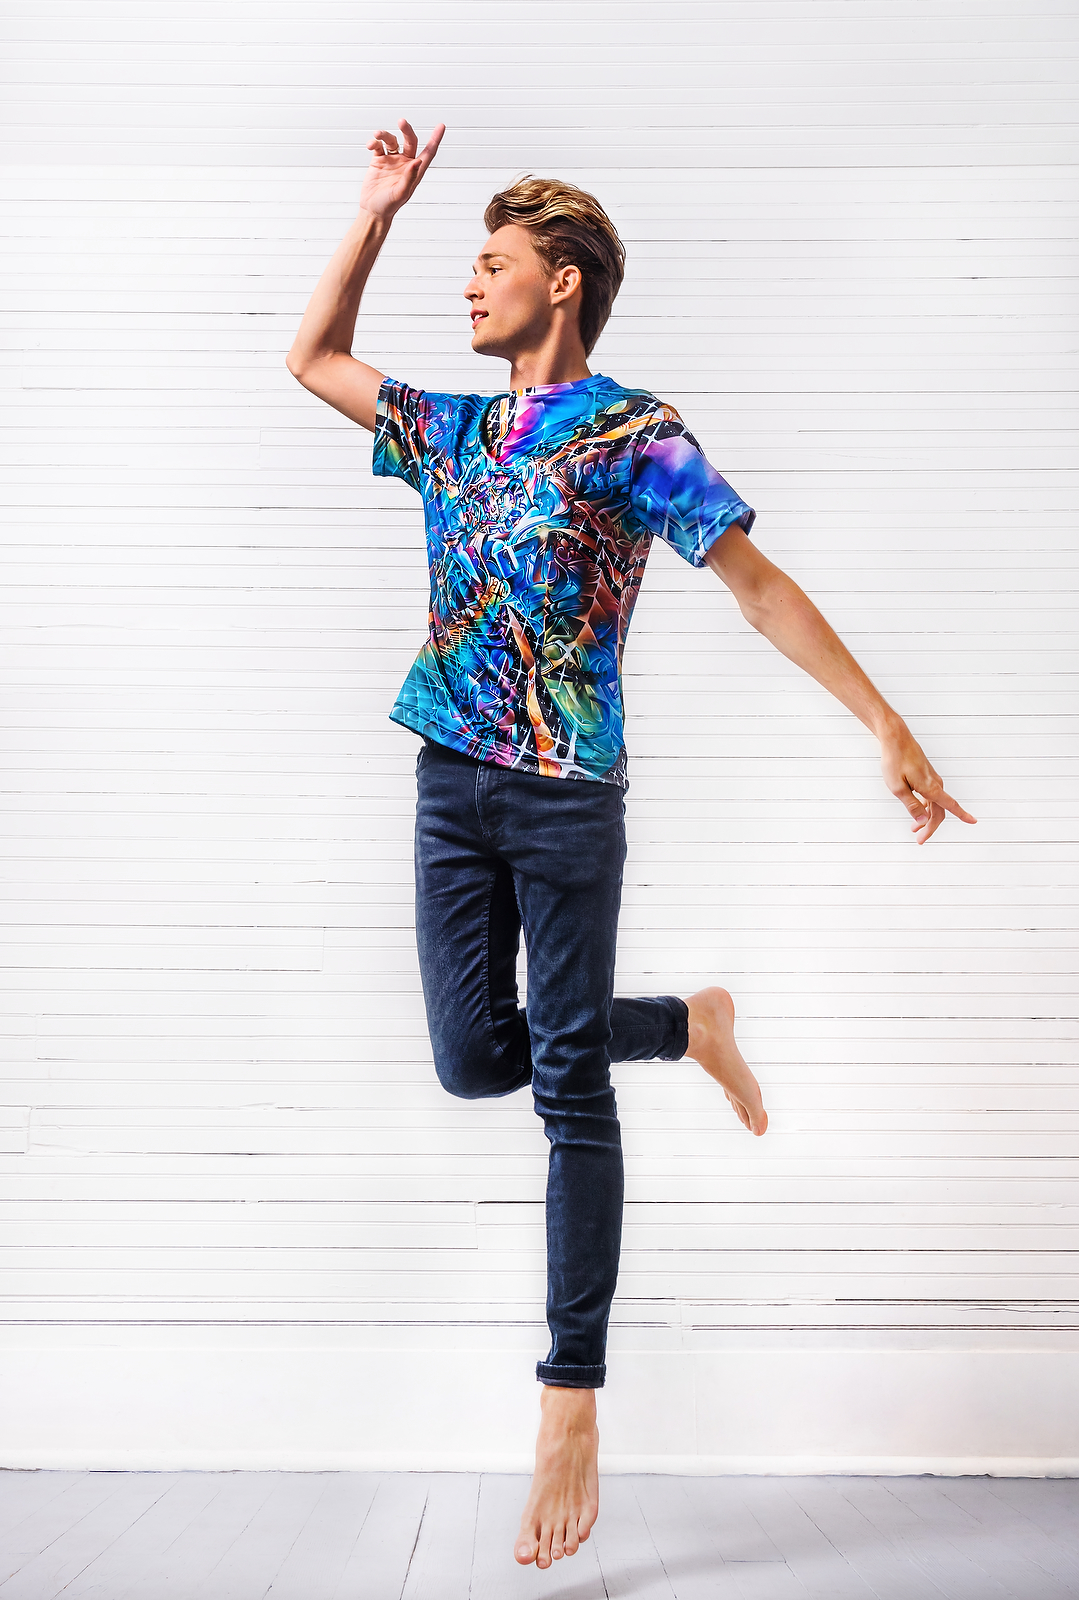 """Atlanta Fashion Photographer  Vision Lab """"Floating in Space"""" Campaign"""